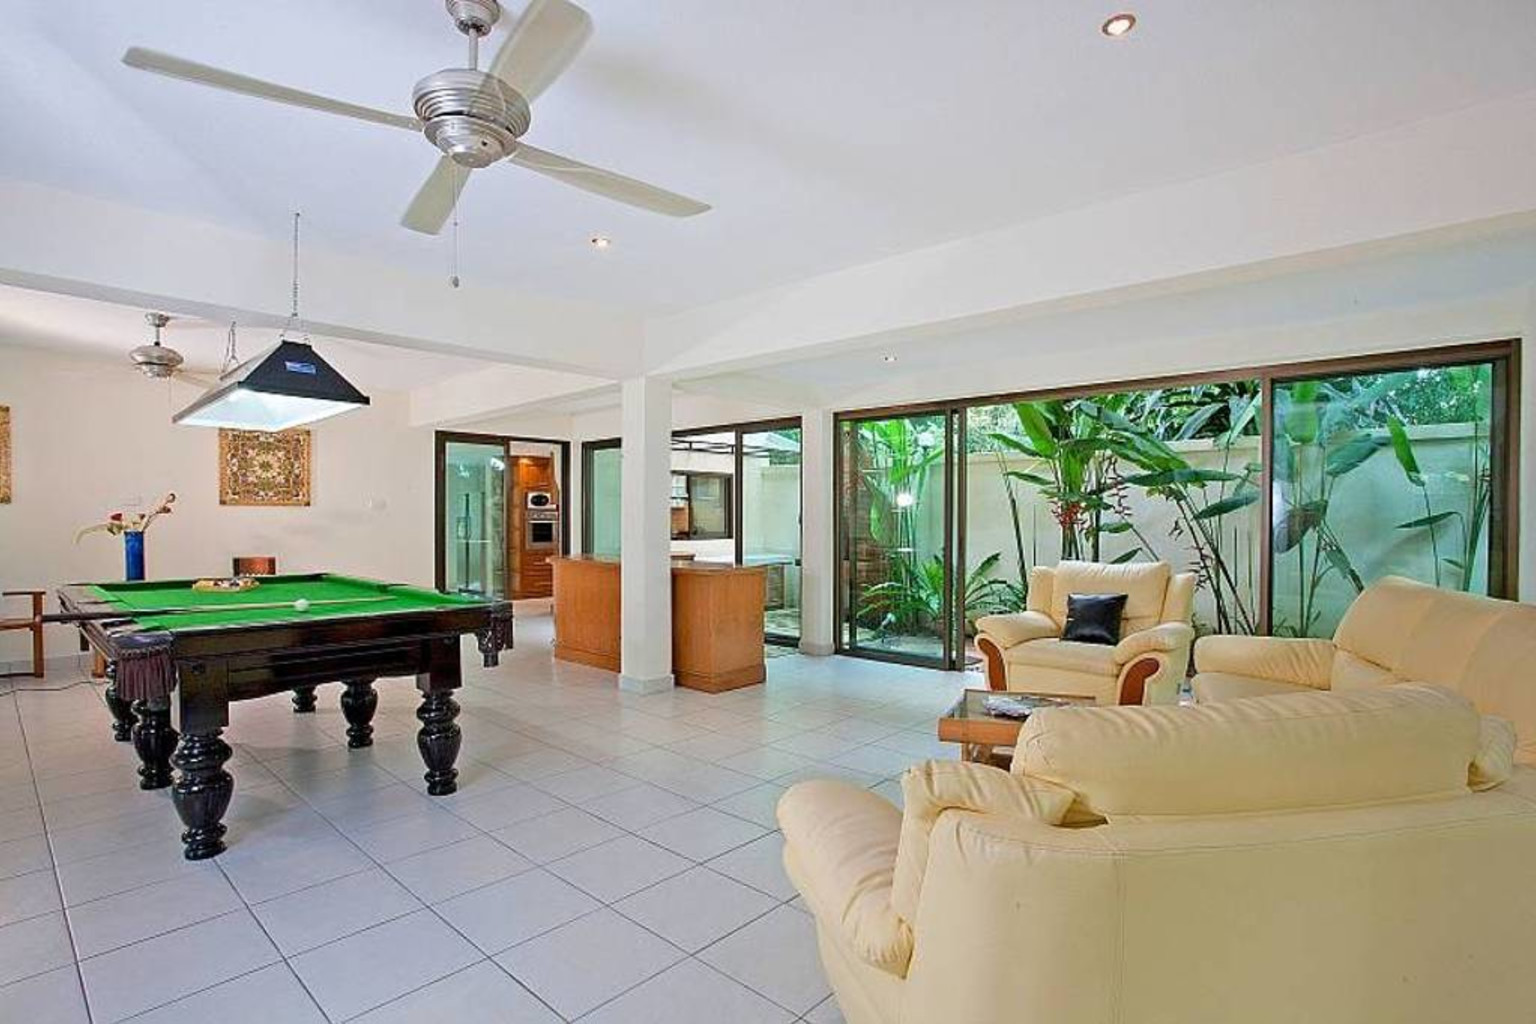 5 bedroom villa sleeps 10 next to walking street in Pattaya ...